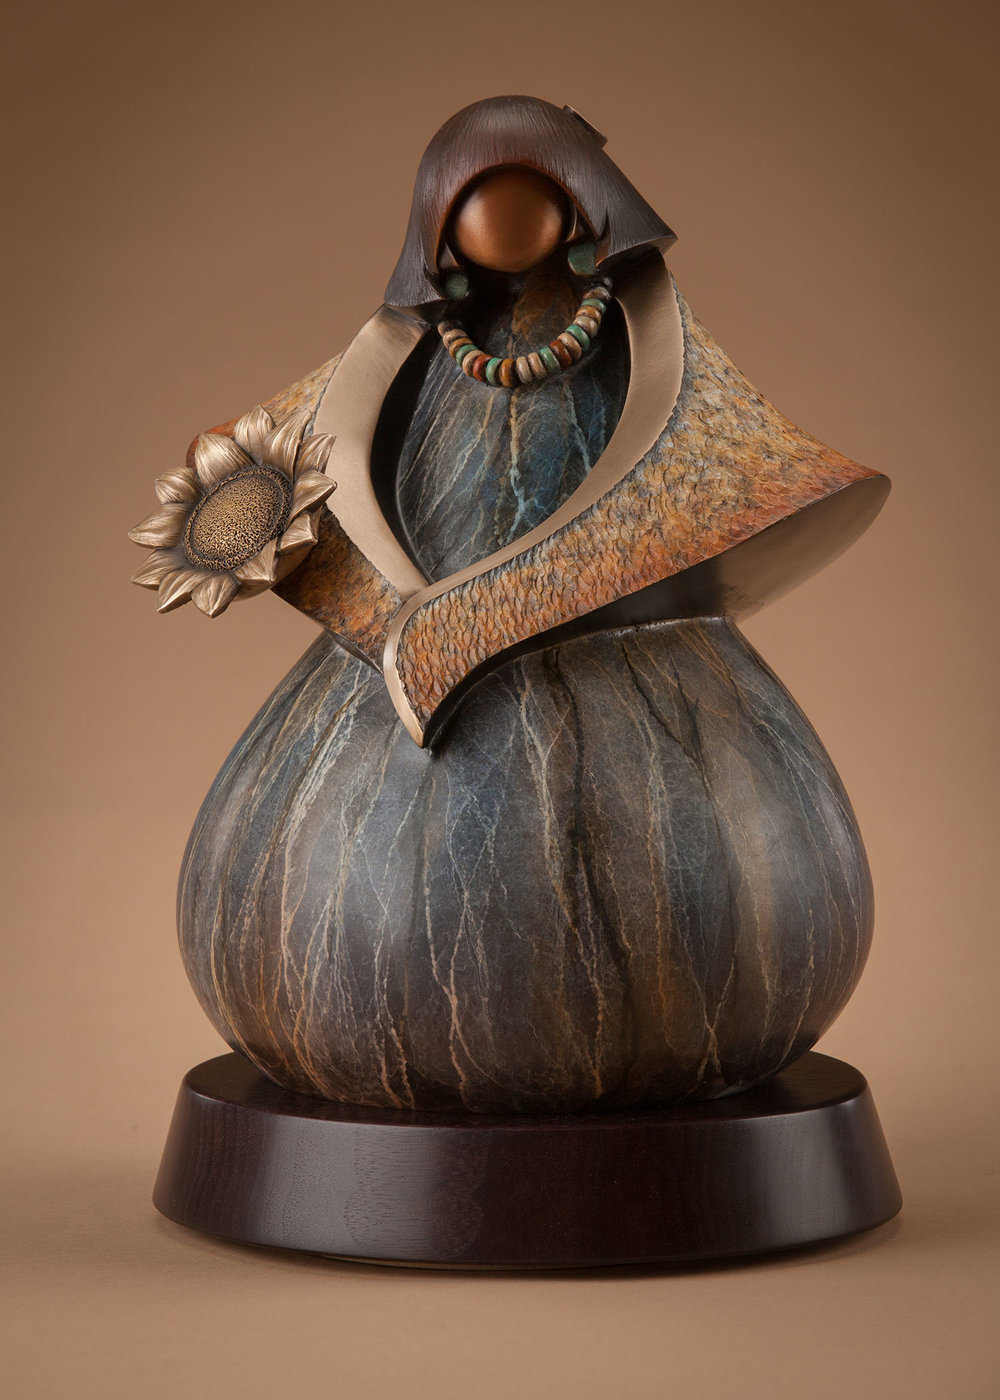 Kim Obrzut - http://www.kimobrzut.comKim starts with clay as her voice with Native symbolism and cast into bronze using the lost wax process. Her patinas are done with different chemical combinations and techniques along with high polish